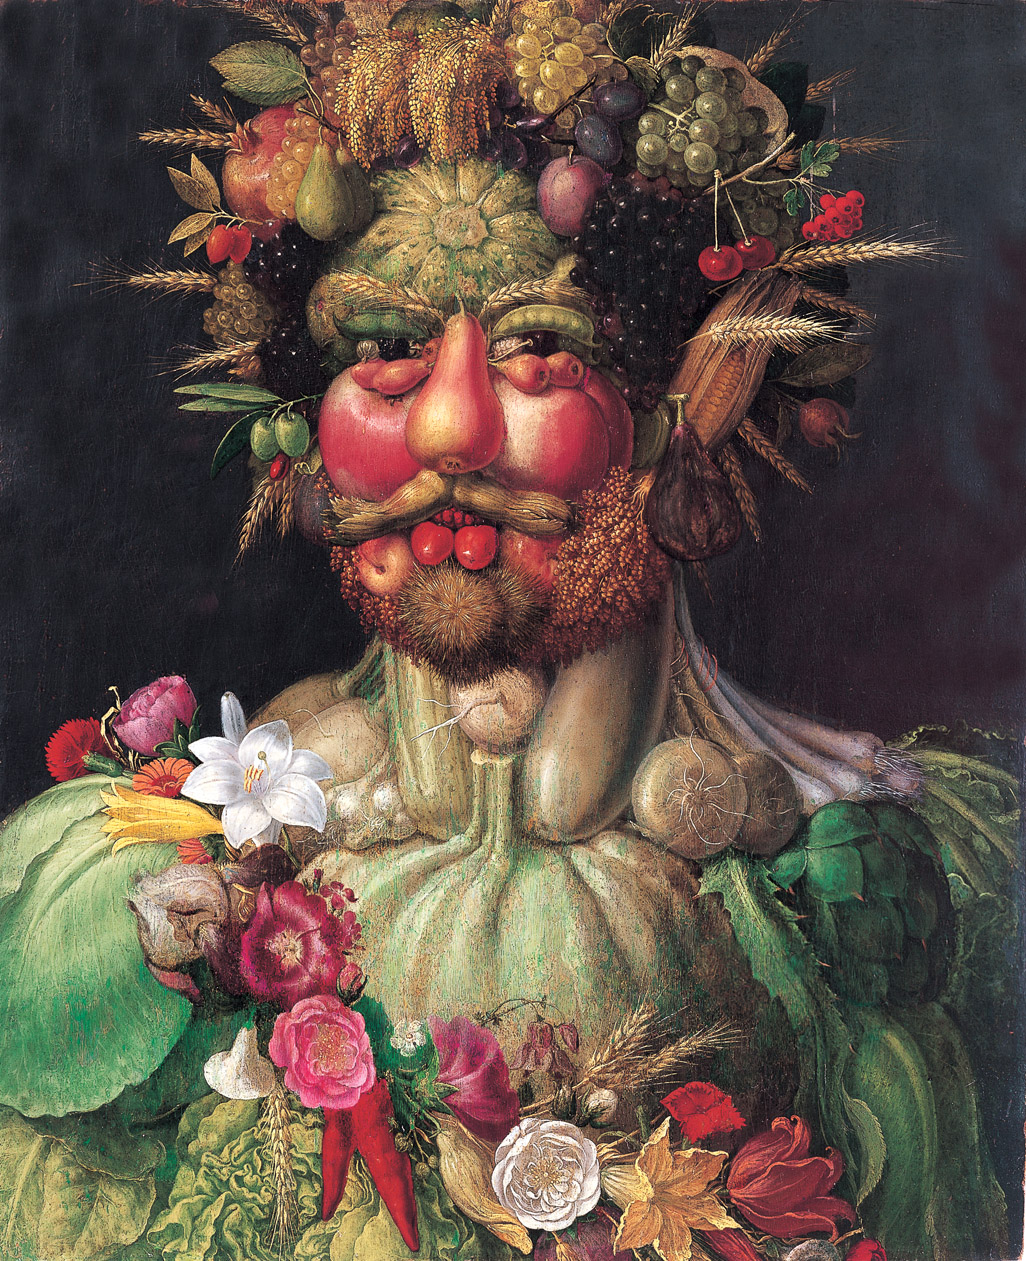 You Are What You Eat: Painting by Giuseppe Arcimboldo